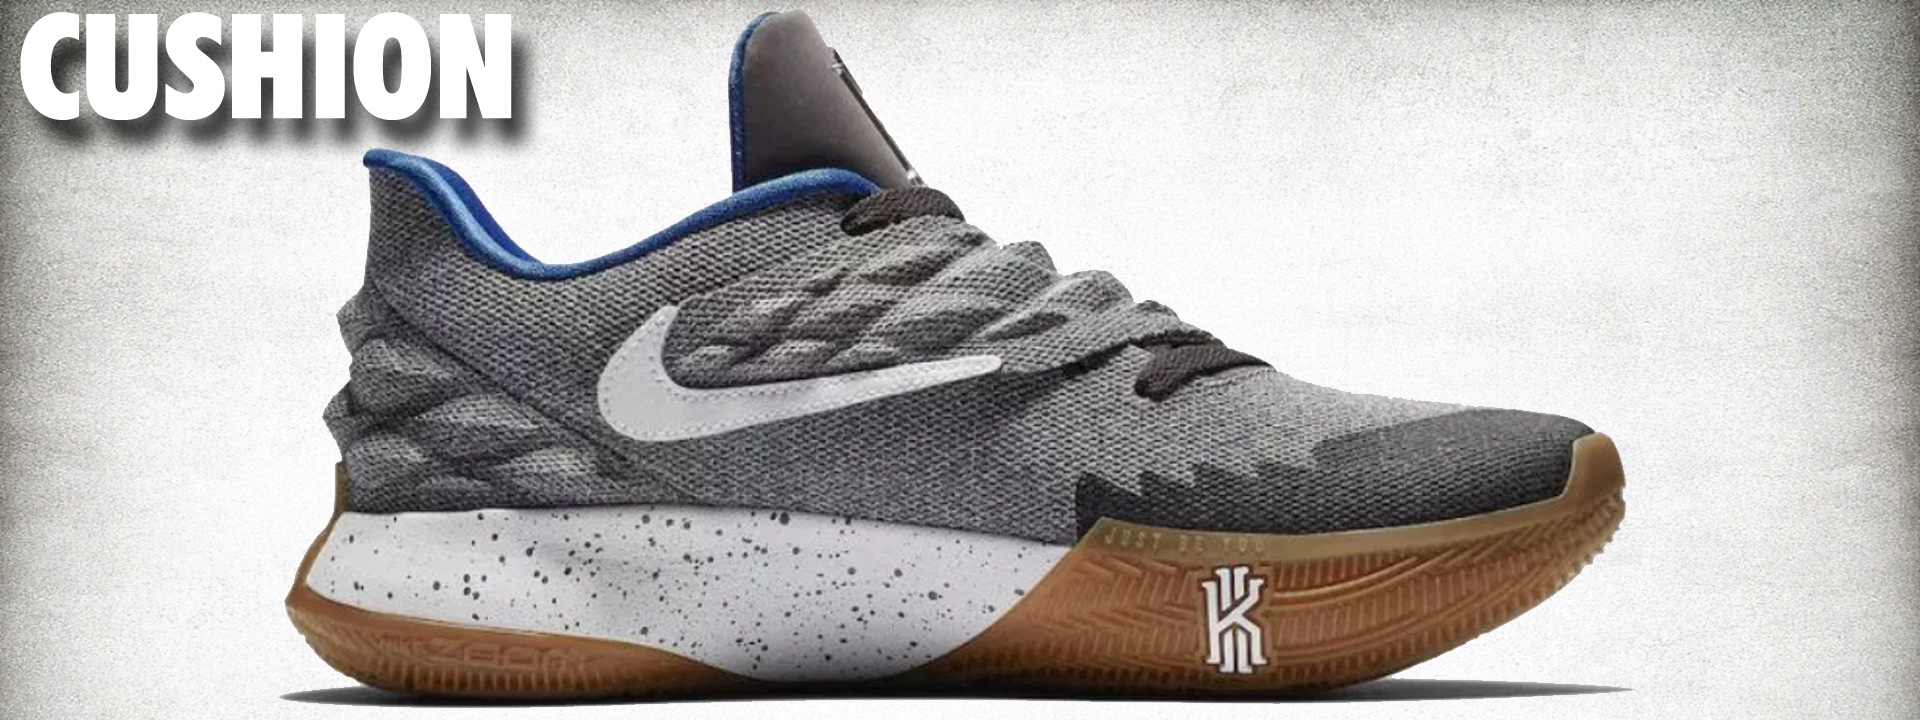 the latest c492e cc922 Nike Kyrie Low Performance Review | Duke4005 - WearTesters